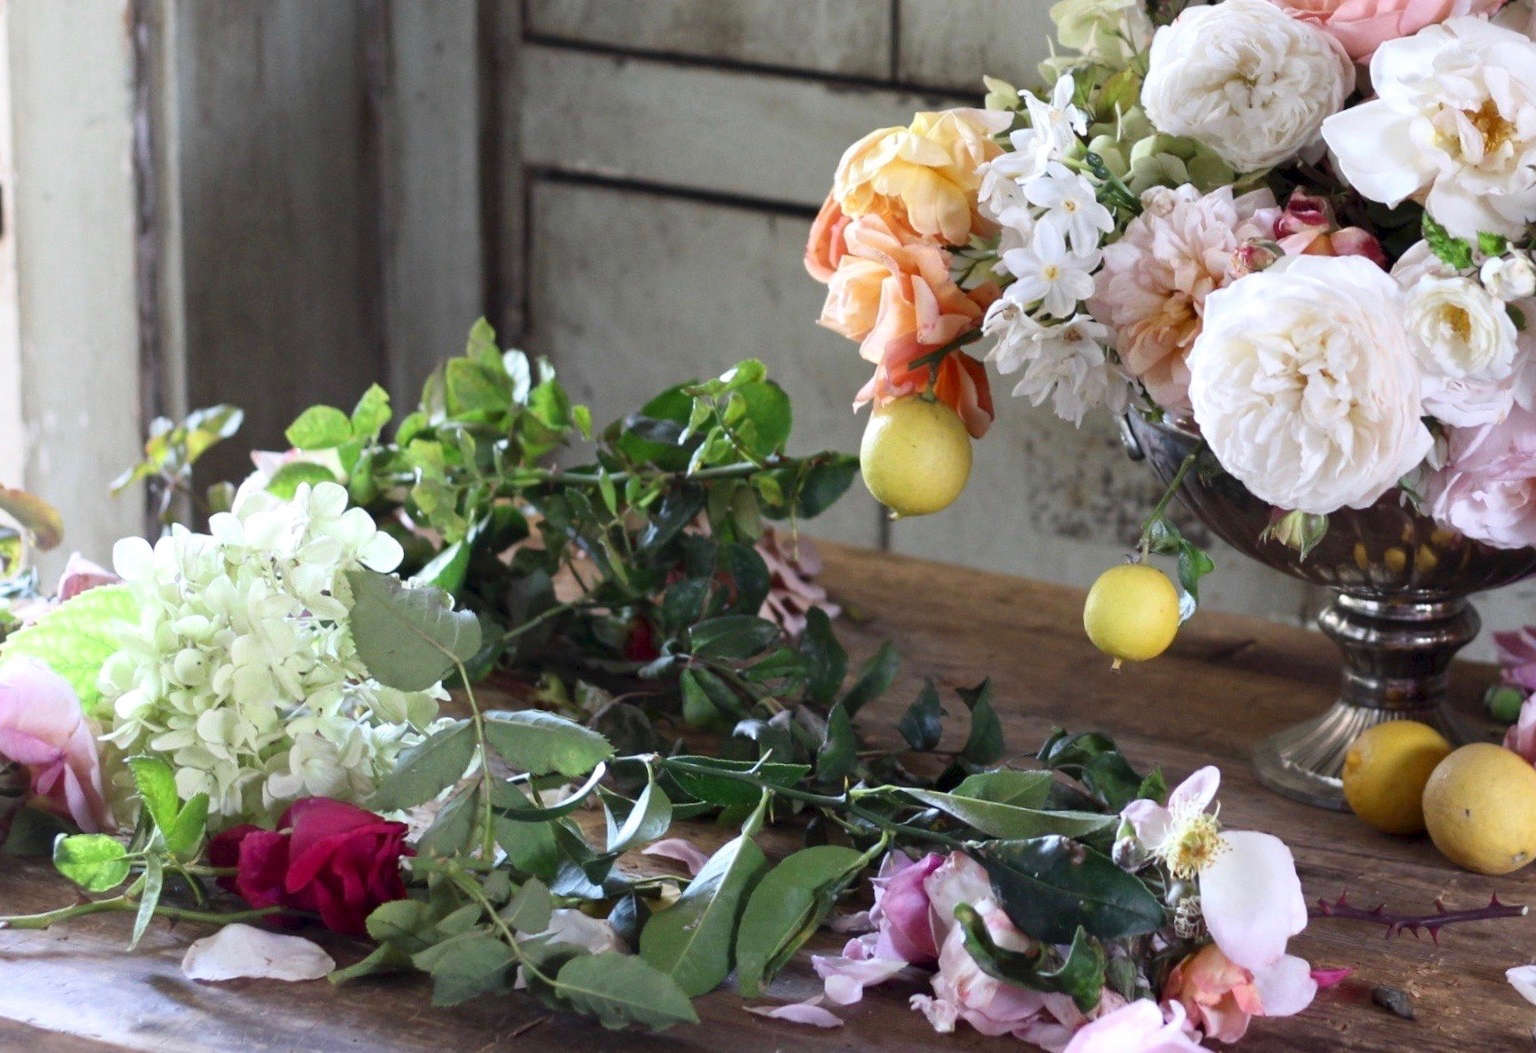 Expert Advice 8 Best Garden Roses For Cutting From A Boutique